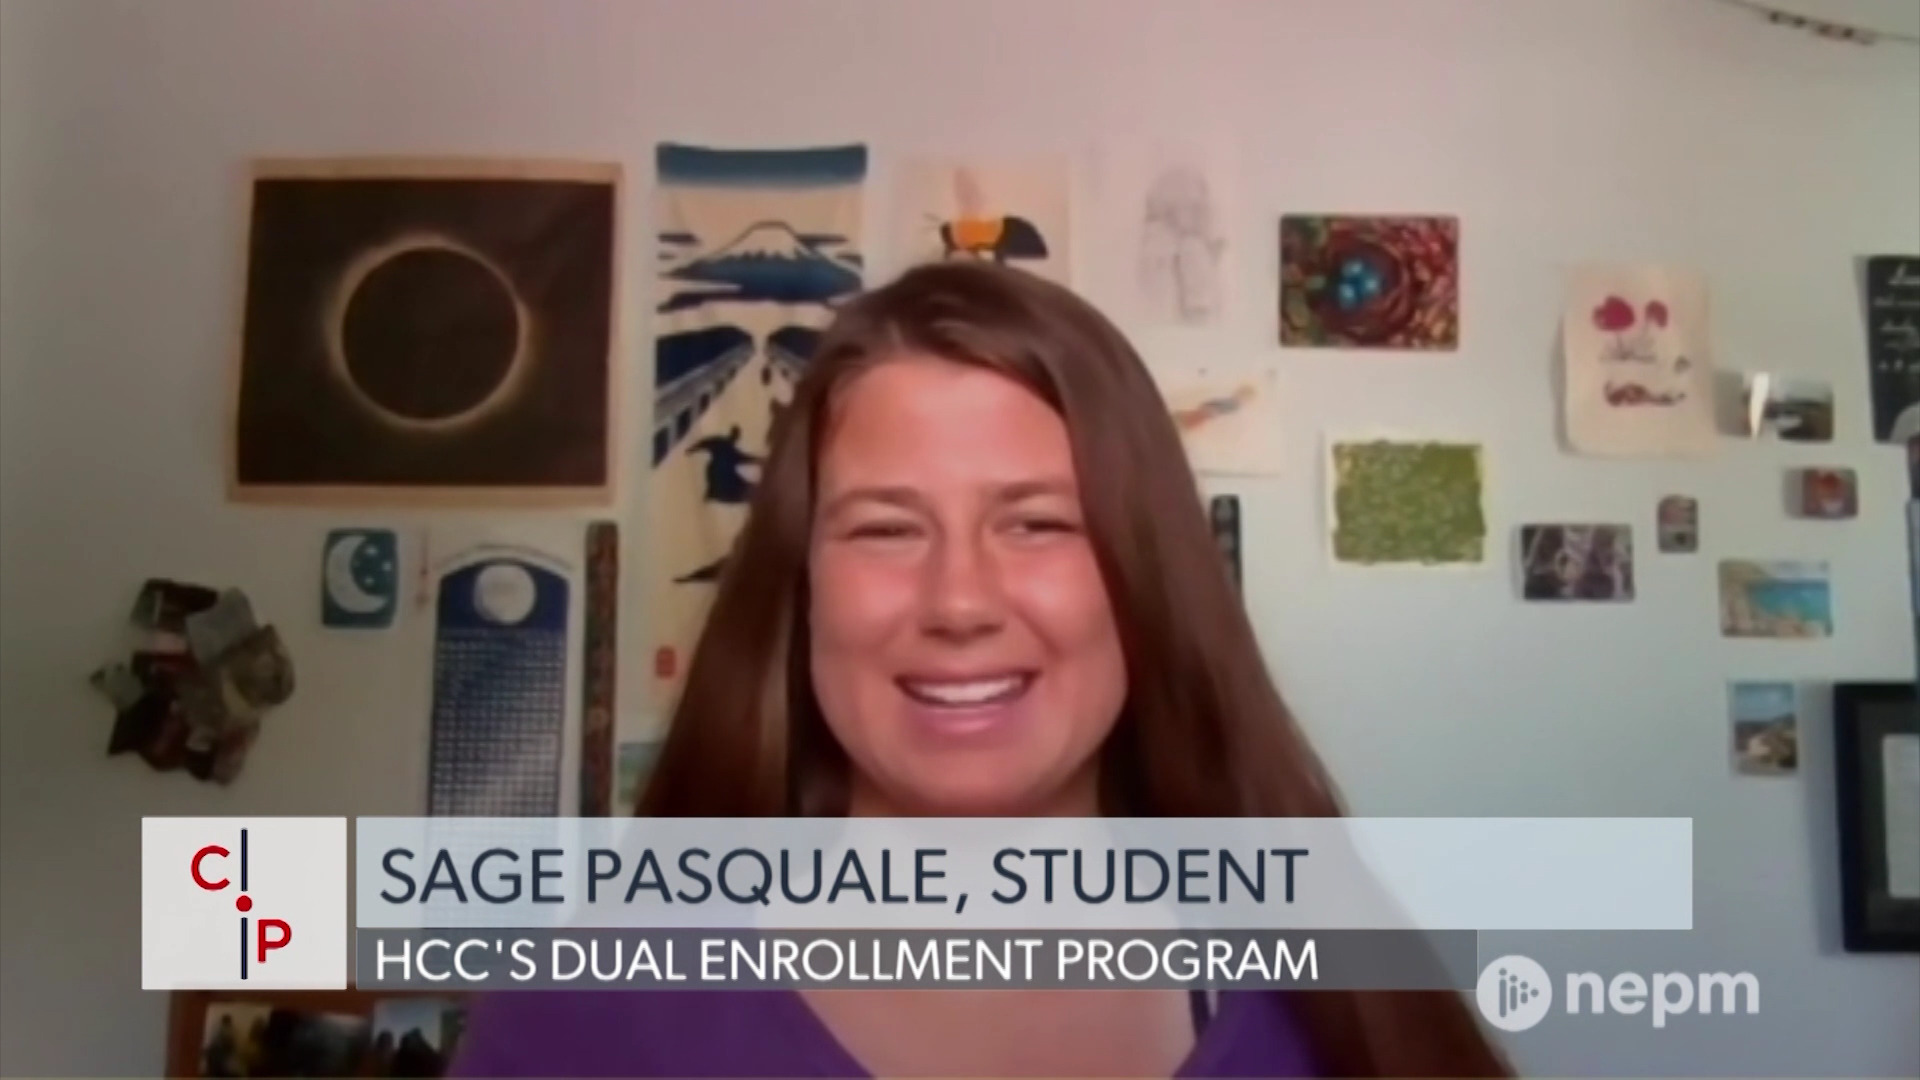 Sage Pasquale shares how she was able to graduate with a high school diploma & an associate's degree thanks to Holyoke Community College's Dual Enrollment program.